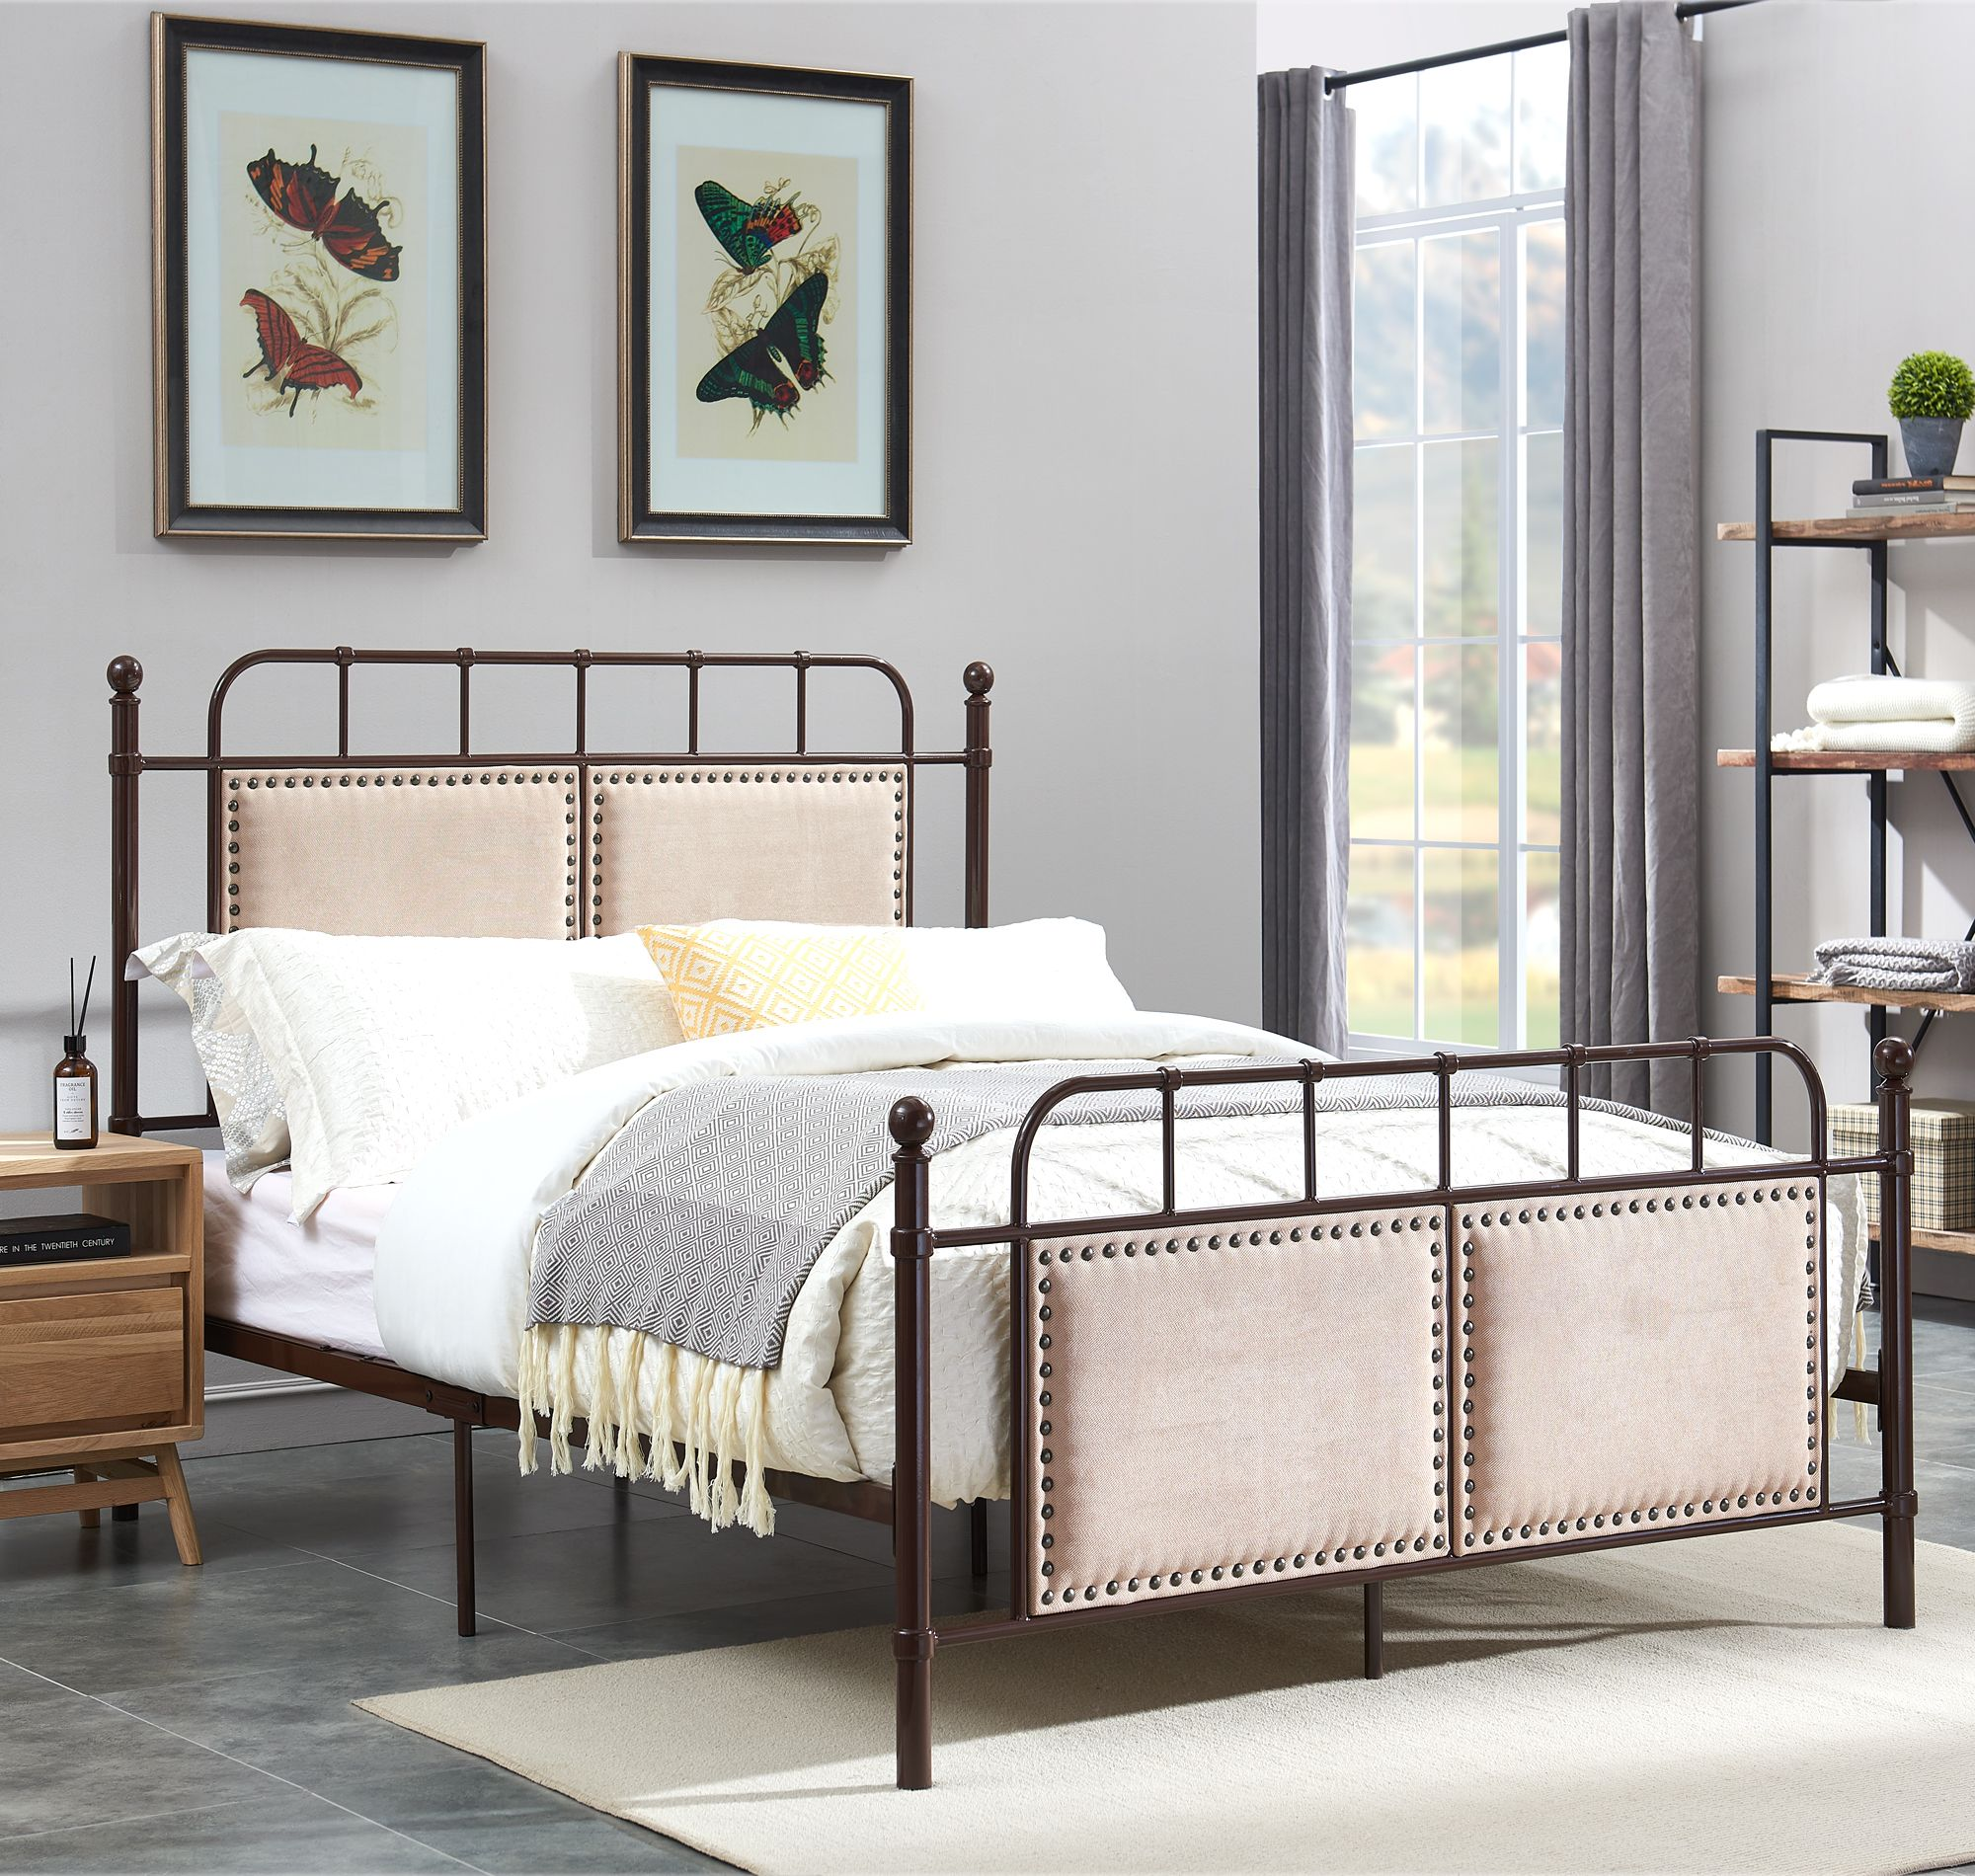 Both headboard and footboard of this metal bed are